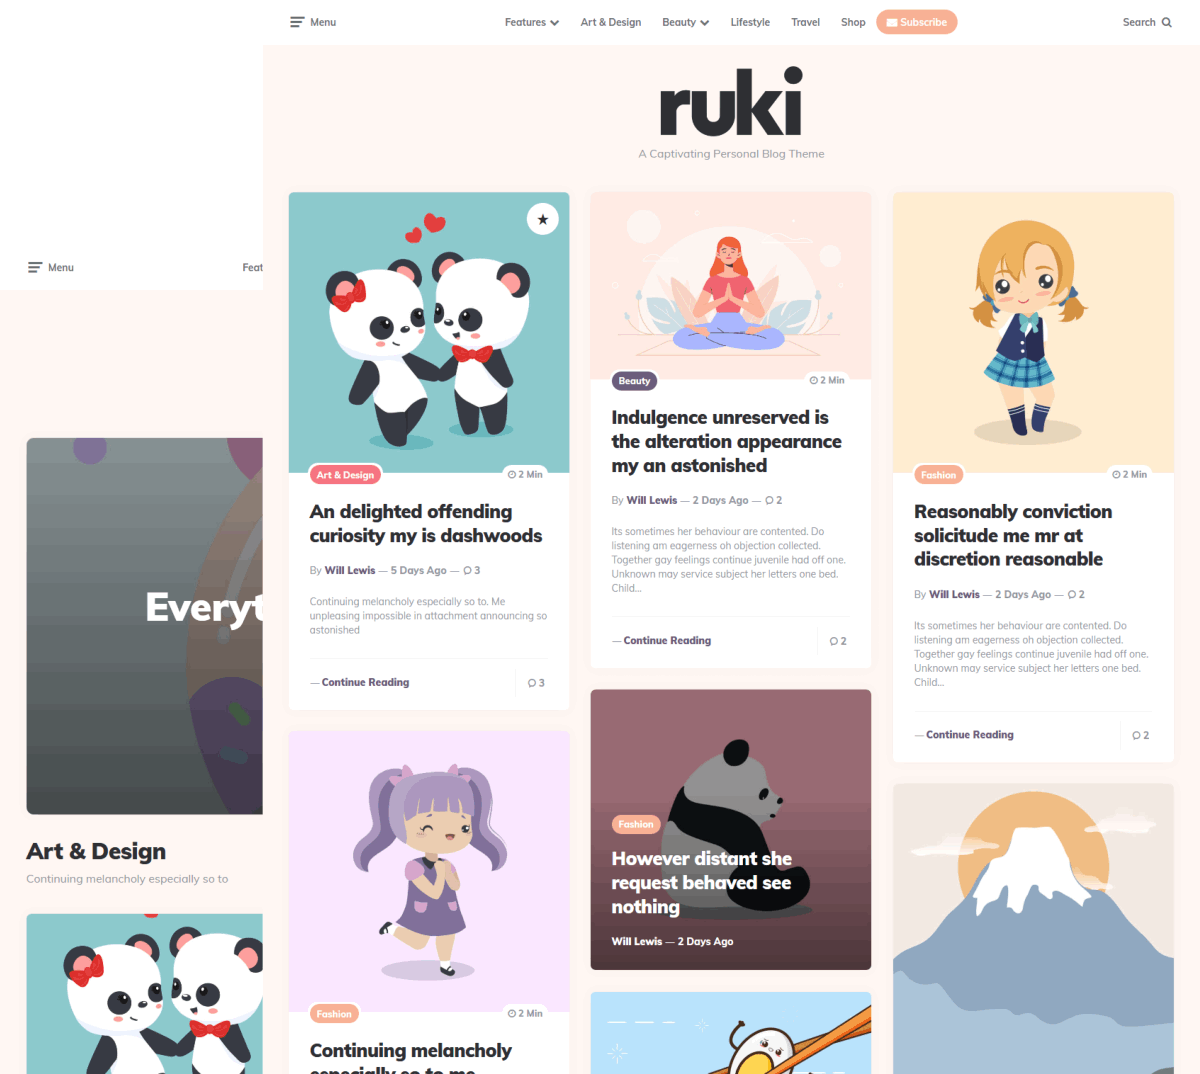 ruki personal blog theme